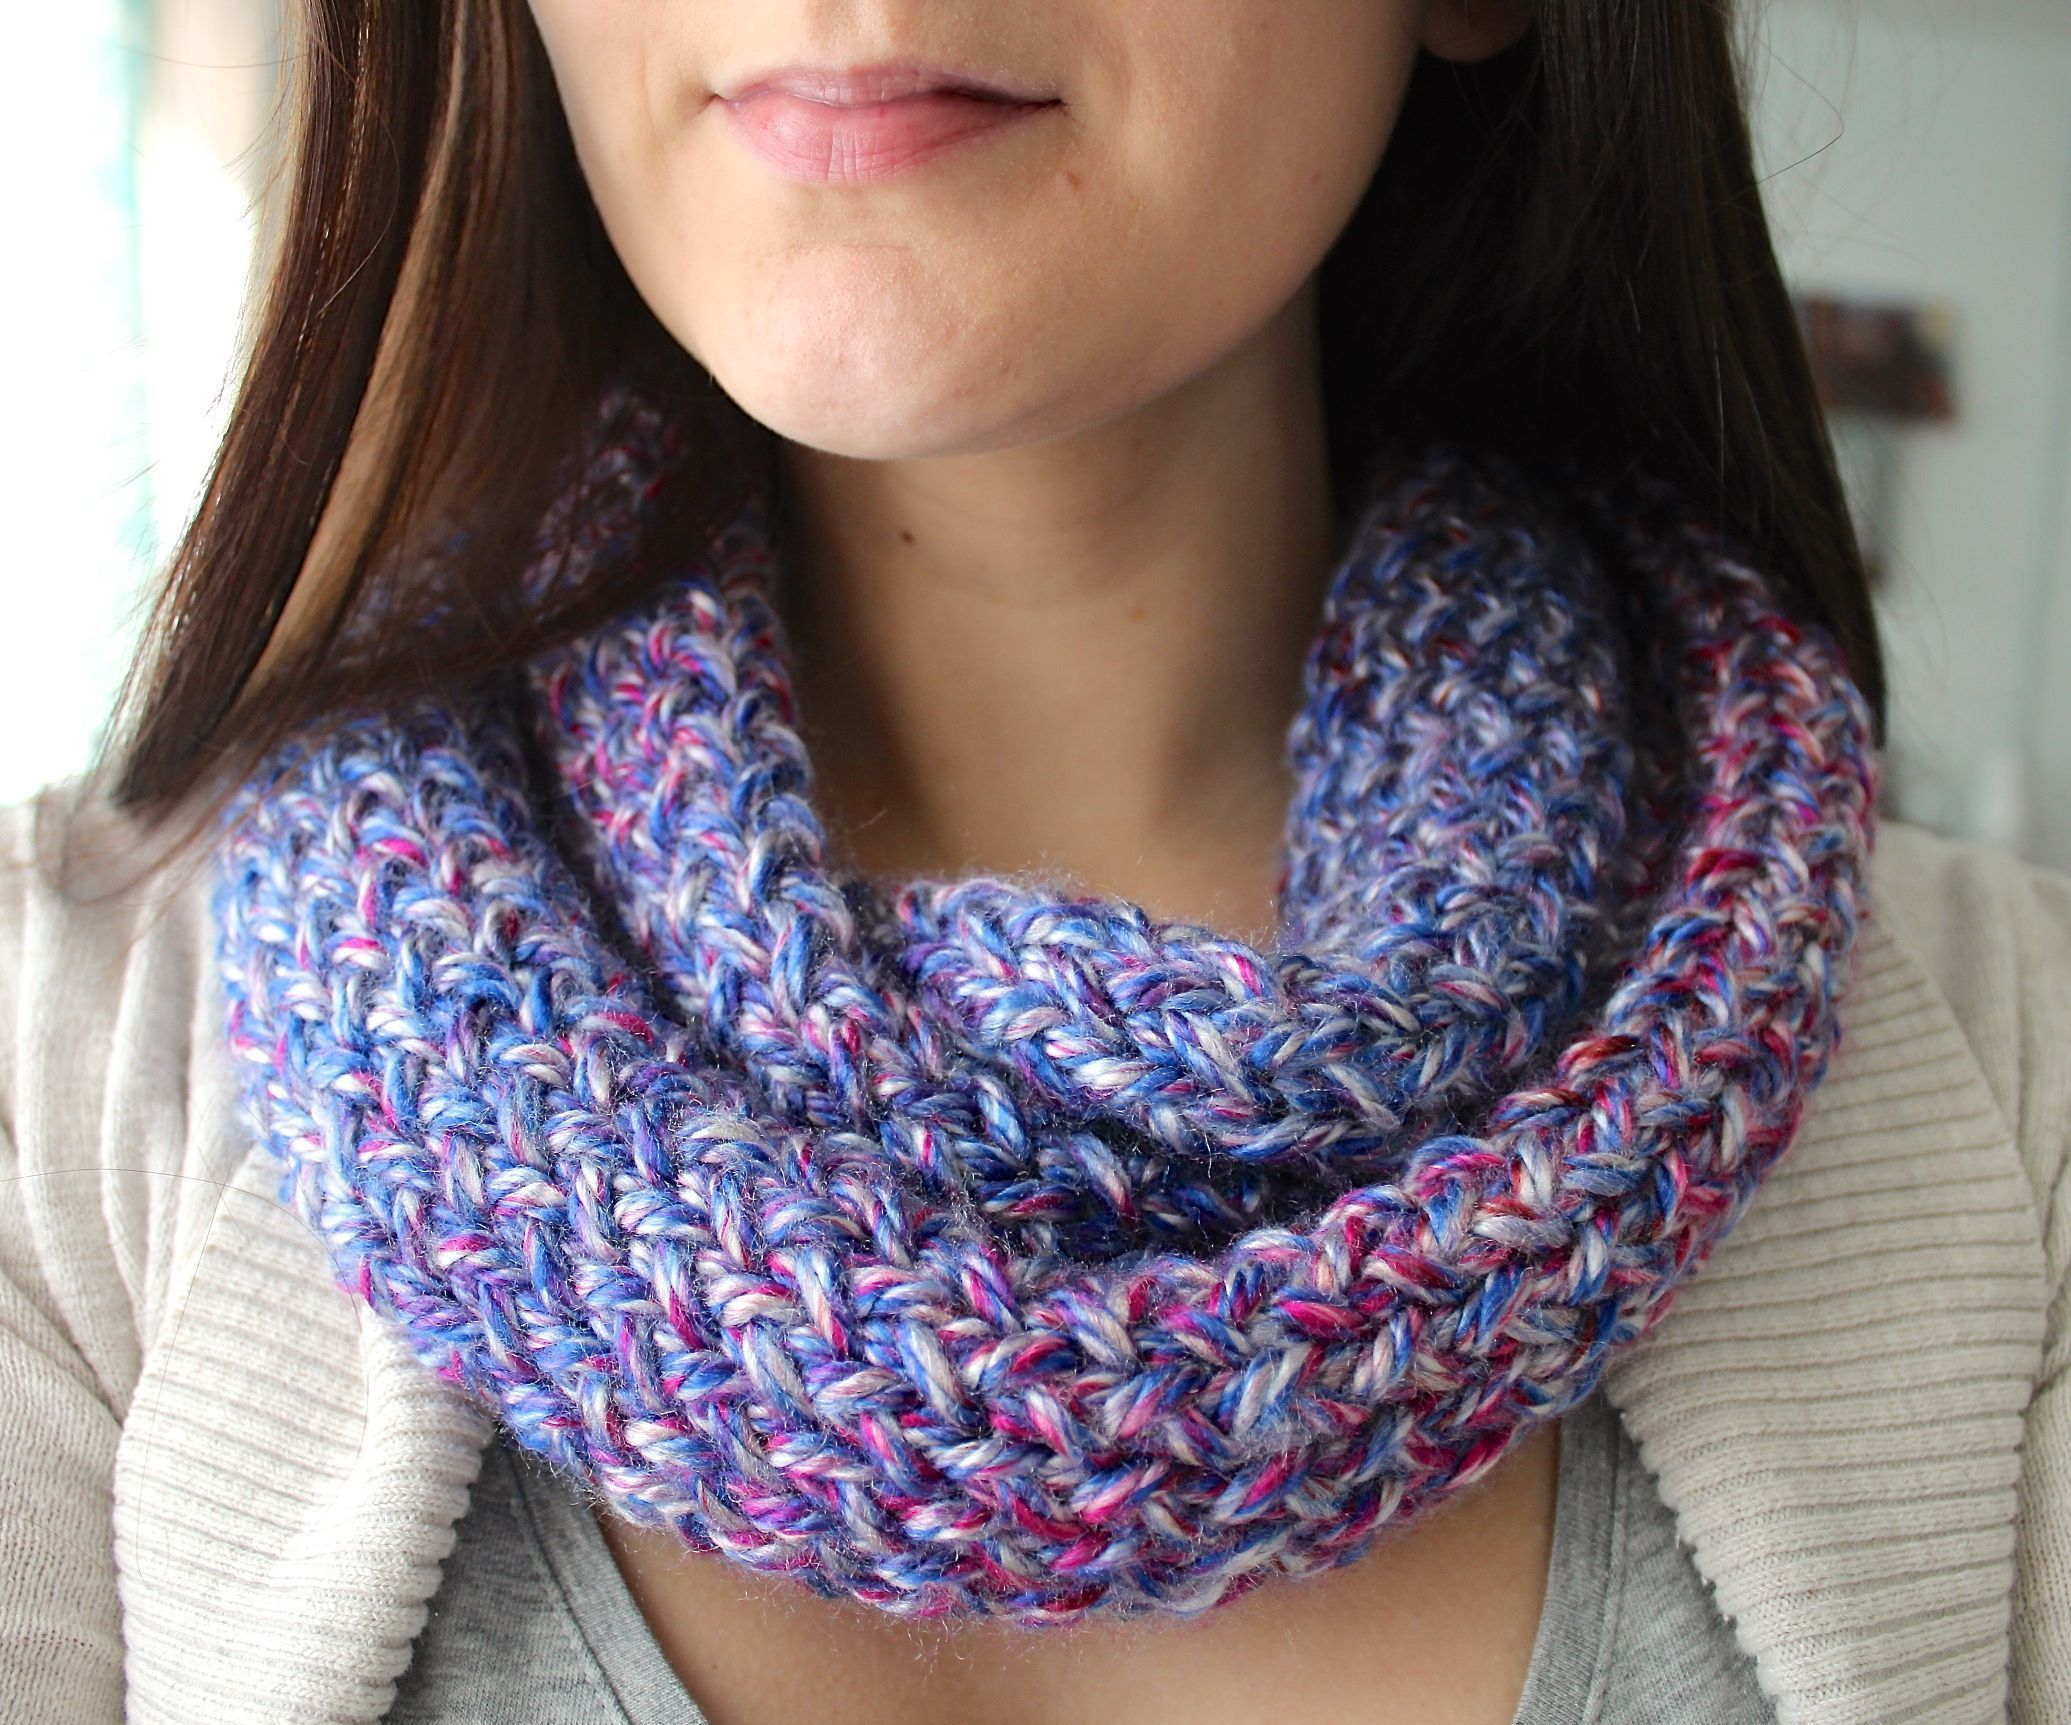 How to knit an infinity scarf on a loom easy knitting projects how to knit an infinity scarf on a loom easy knitting projectsknitting ideasyarn bankloansurffo Choice Image